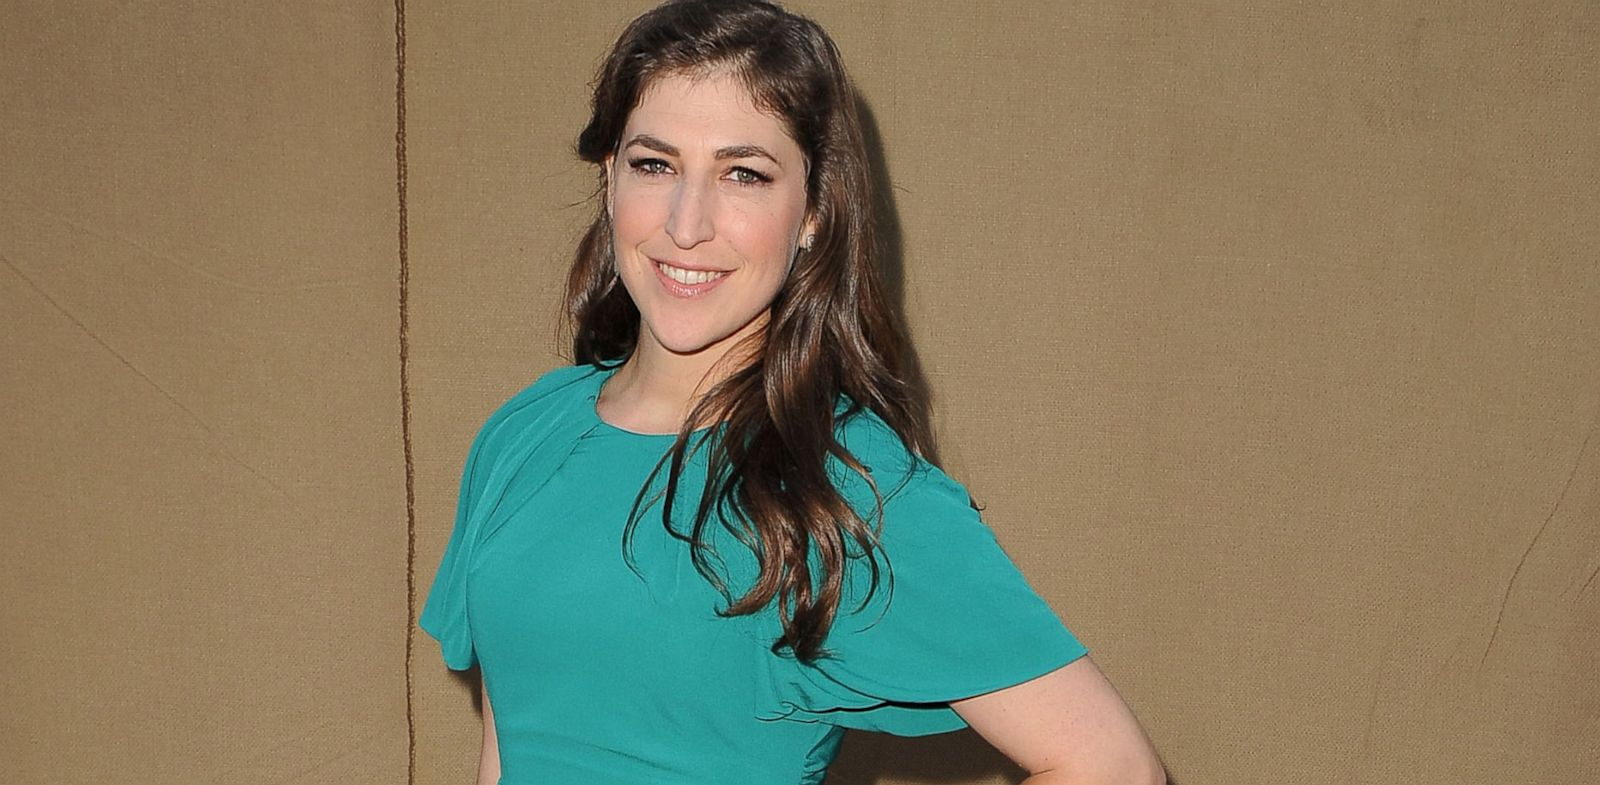 mayim bialik tumblrmayim bialik net worth, mayim bialik imdb, mayim bialik frozen, mayim bialik neuroscience, mayim bialik young, mayim bialik ethnic background, mayim bialik forrest gump, mayim bialik wiki, mayim bialik star trek, mayim bialik gallery, mayim bialik book, mayim bialik @missmayim, mayim bialik in jeans, mayim bialik tumblr, mayim bialik ariana grande, mayim bialik to register, mayim bialik photo, mayim bialik how to pronounce, mayim bialik husband michael stone, mayim bialik chef